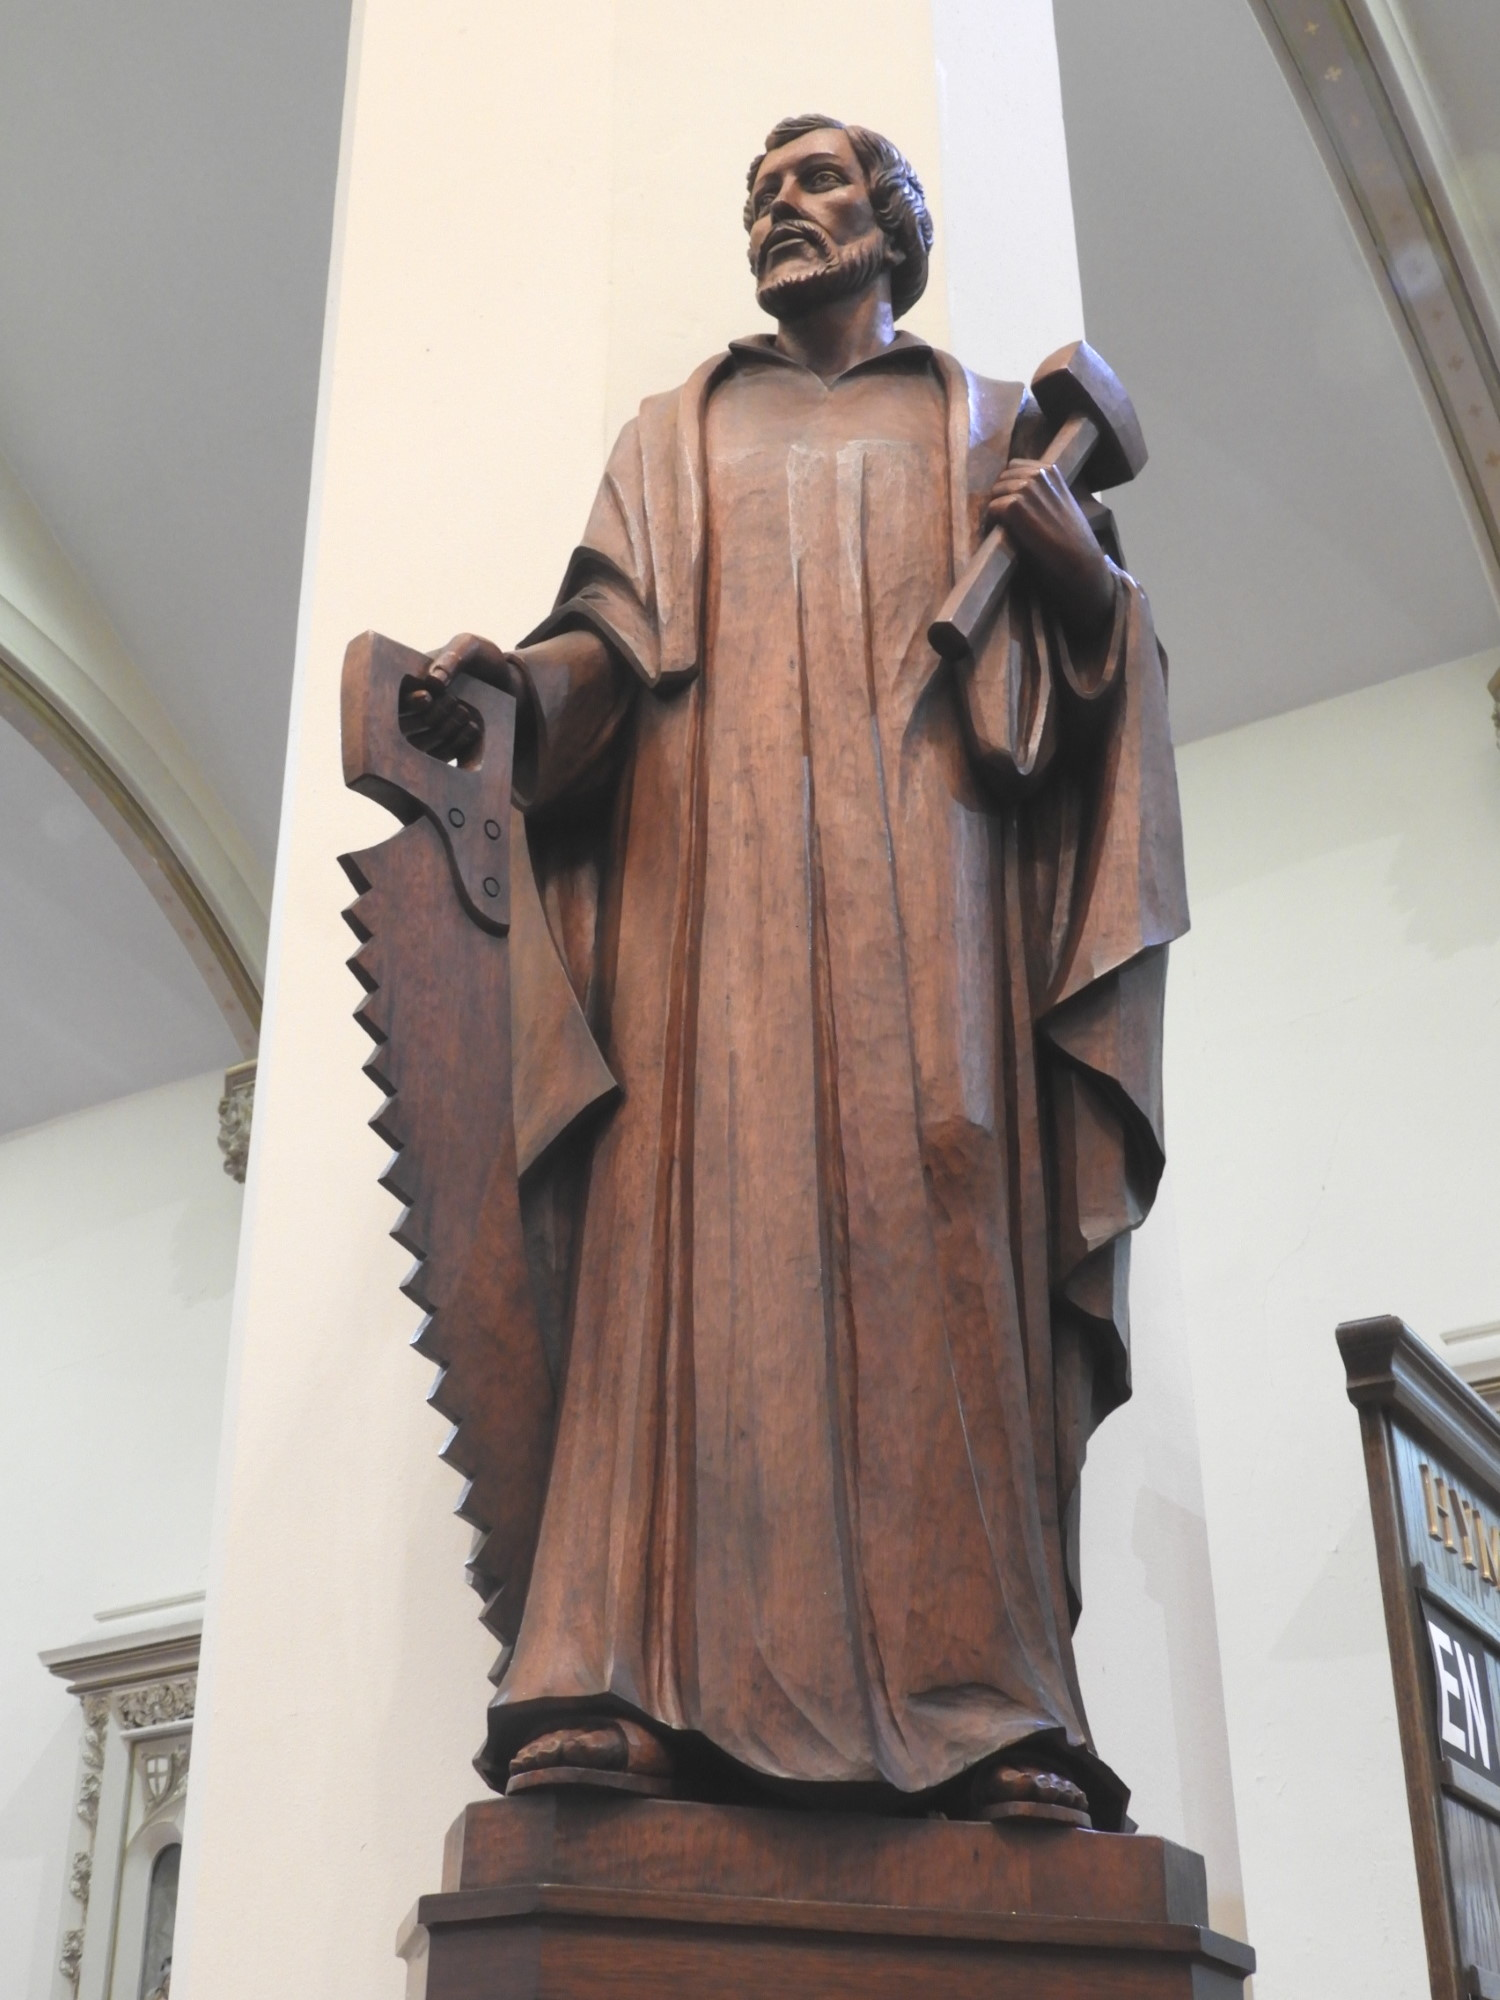 St. Joseph the Carpenter, unknown artist and date. Photograph by Richard Heath, 2019